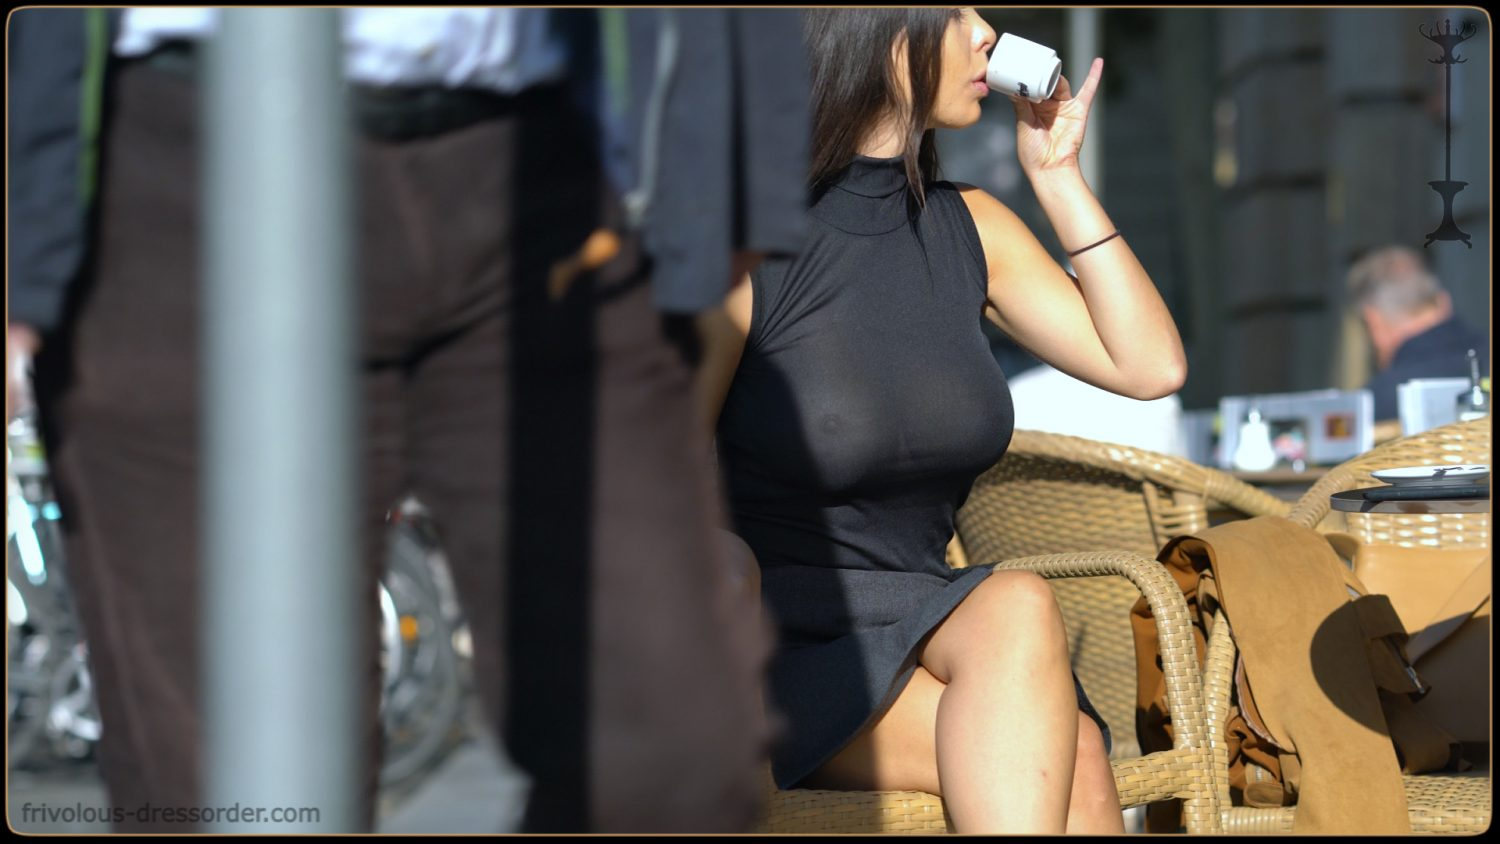 The Busty Lady In The Overcoat Frivolous Dress Order